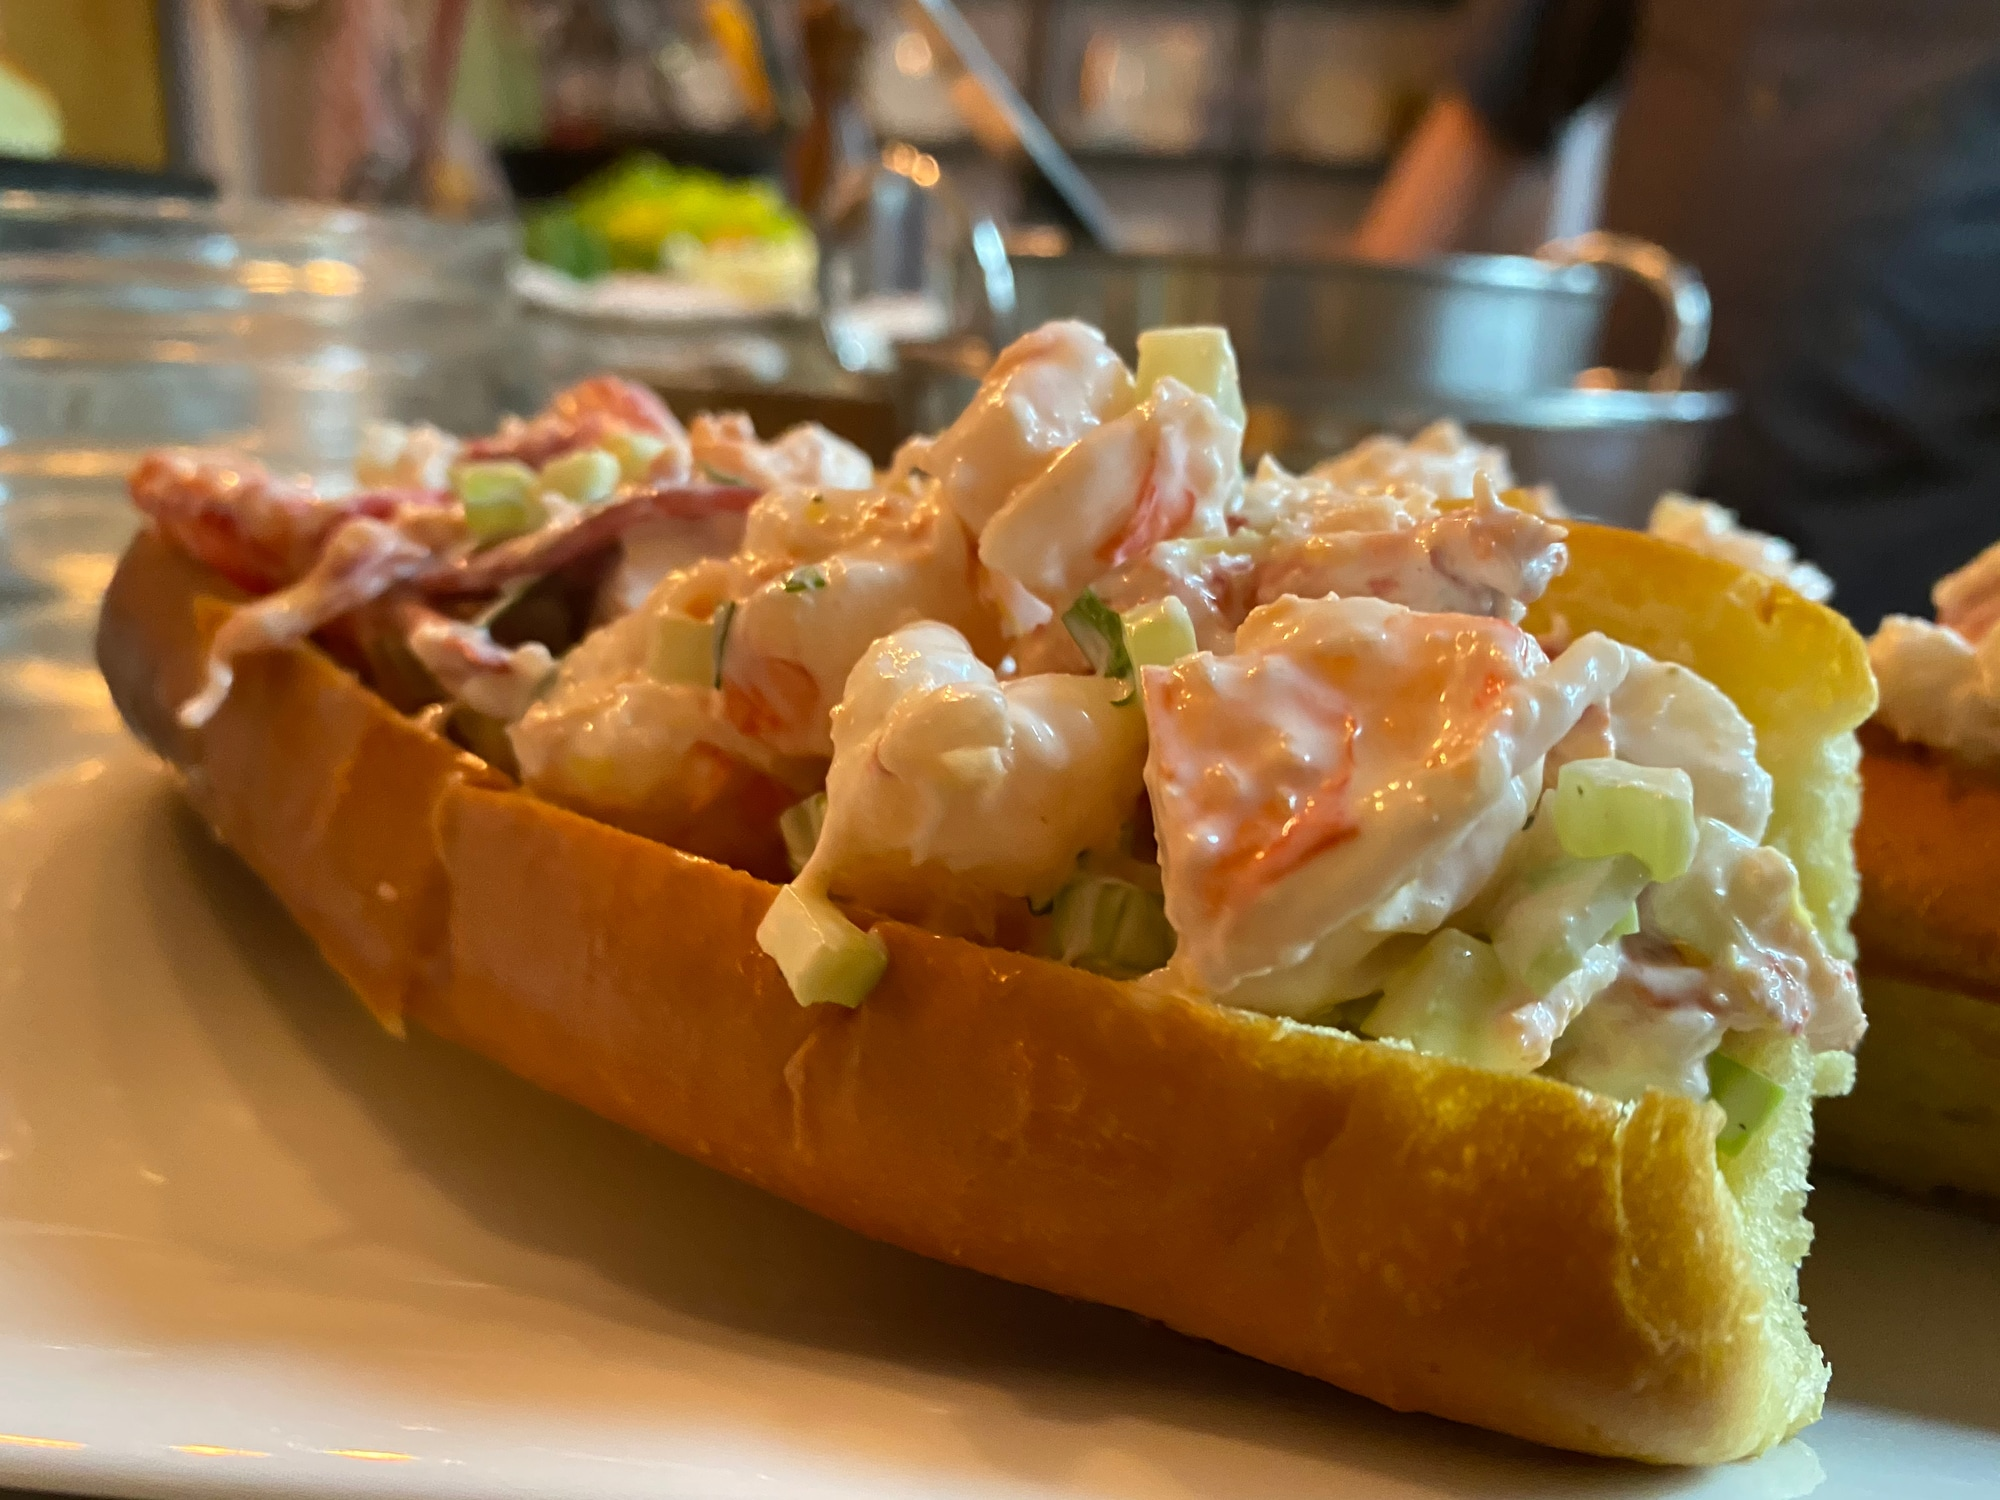 The Lobster Roll at The Garden Café